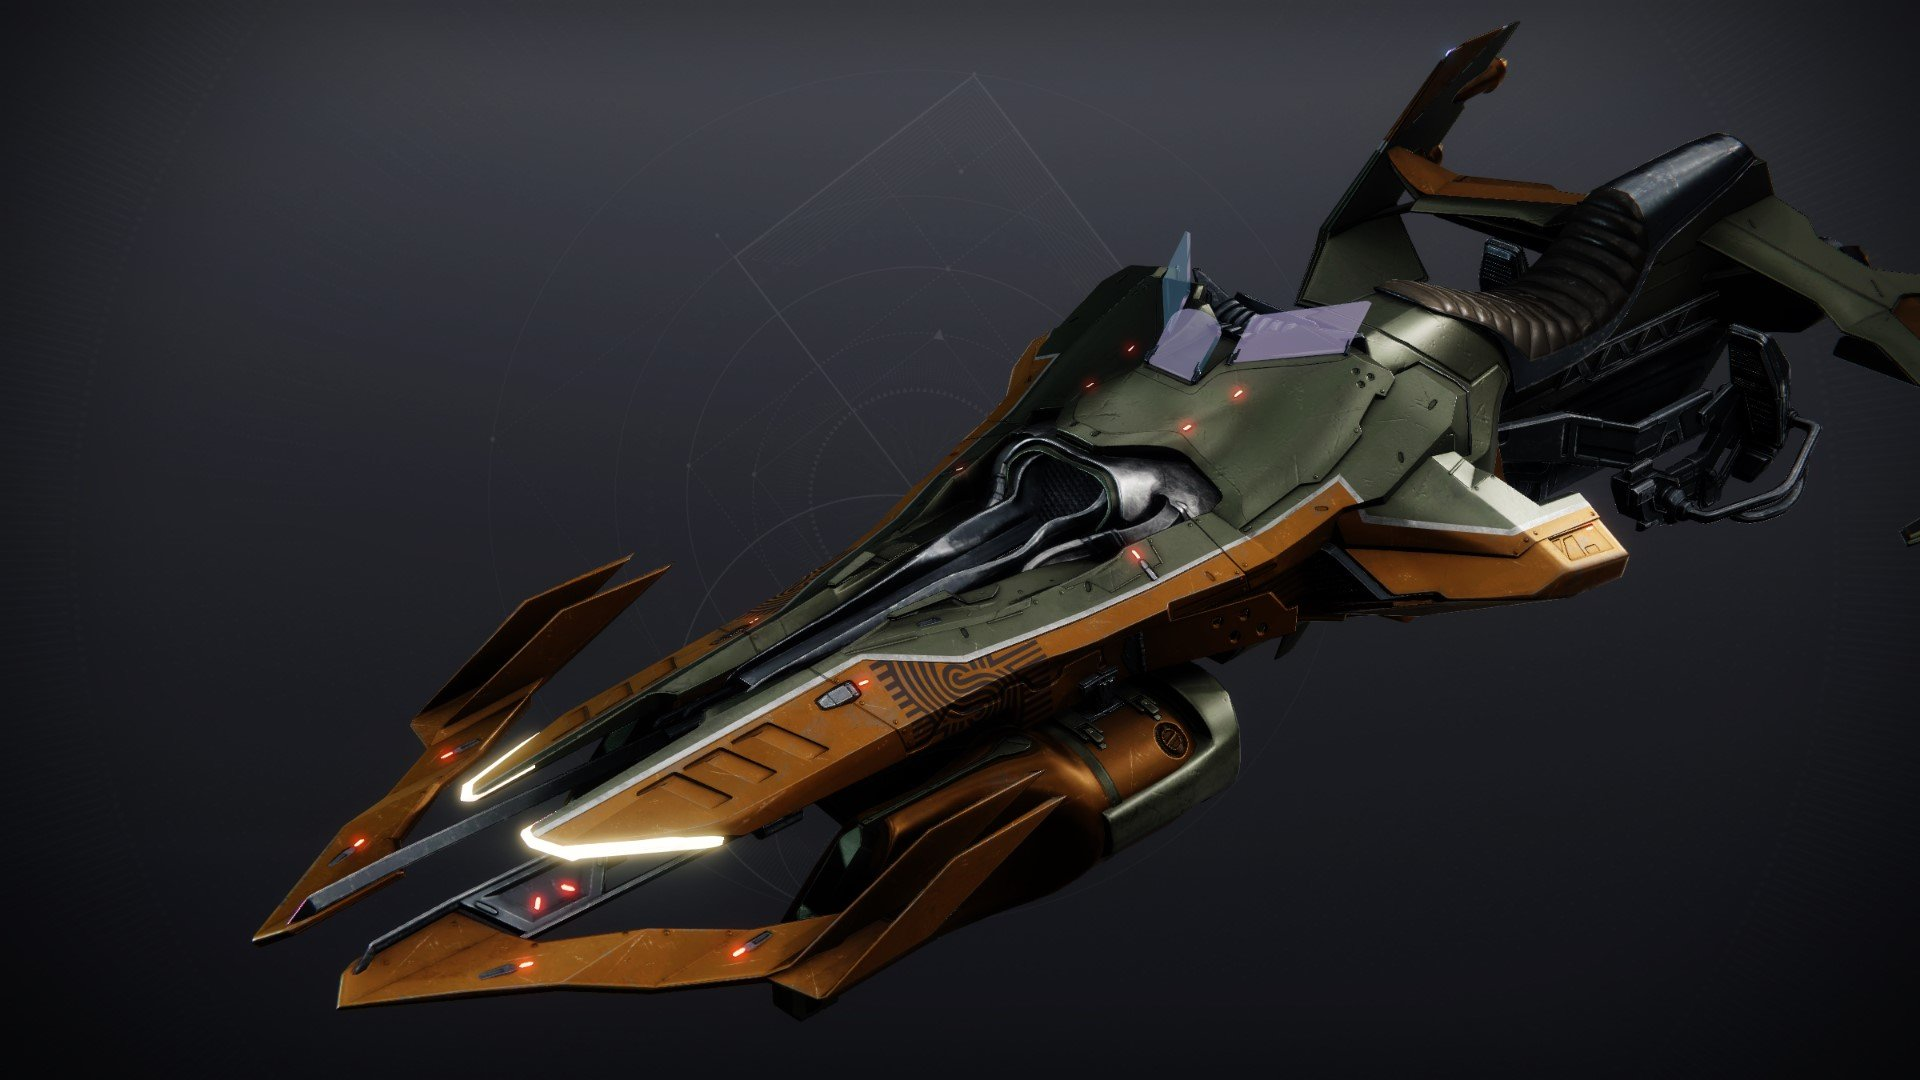 An in-game render of the Any Other Sky.